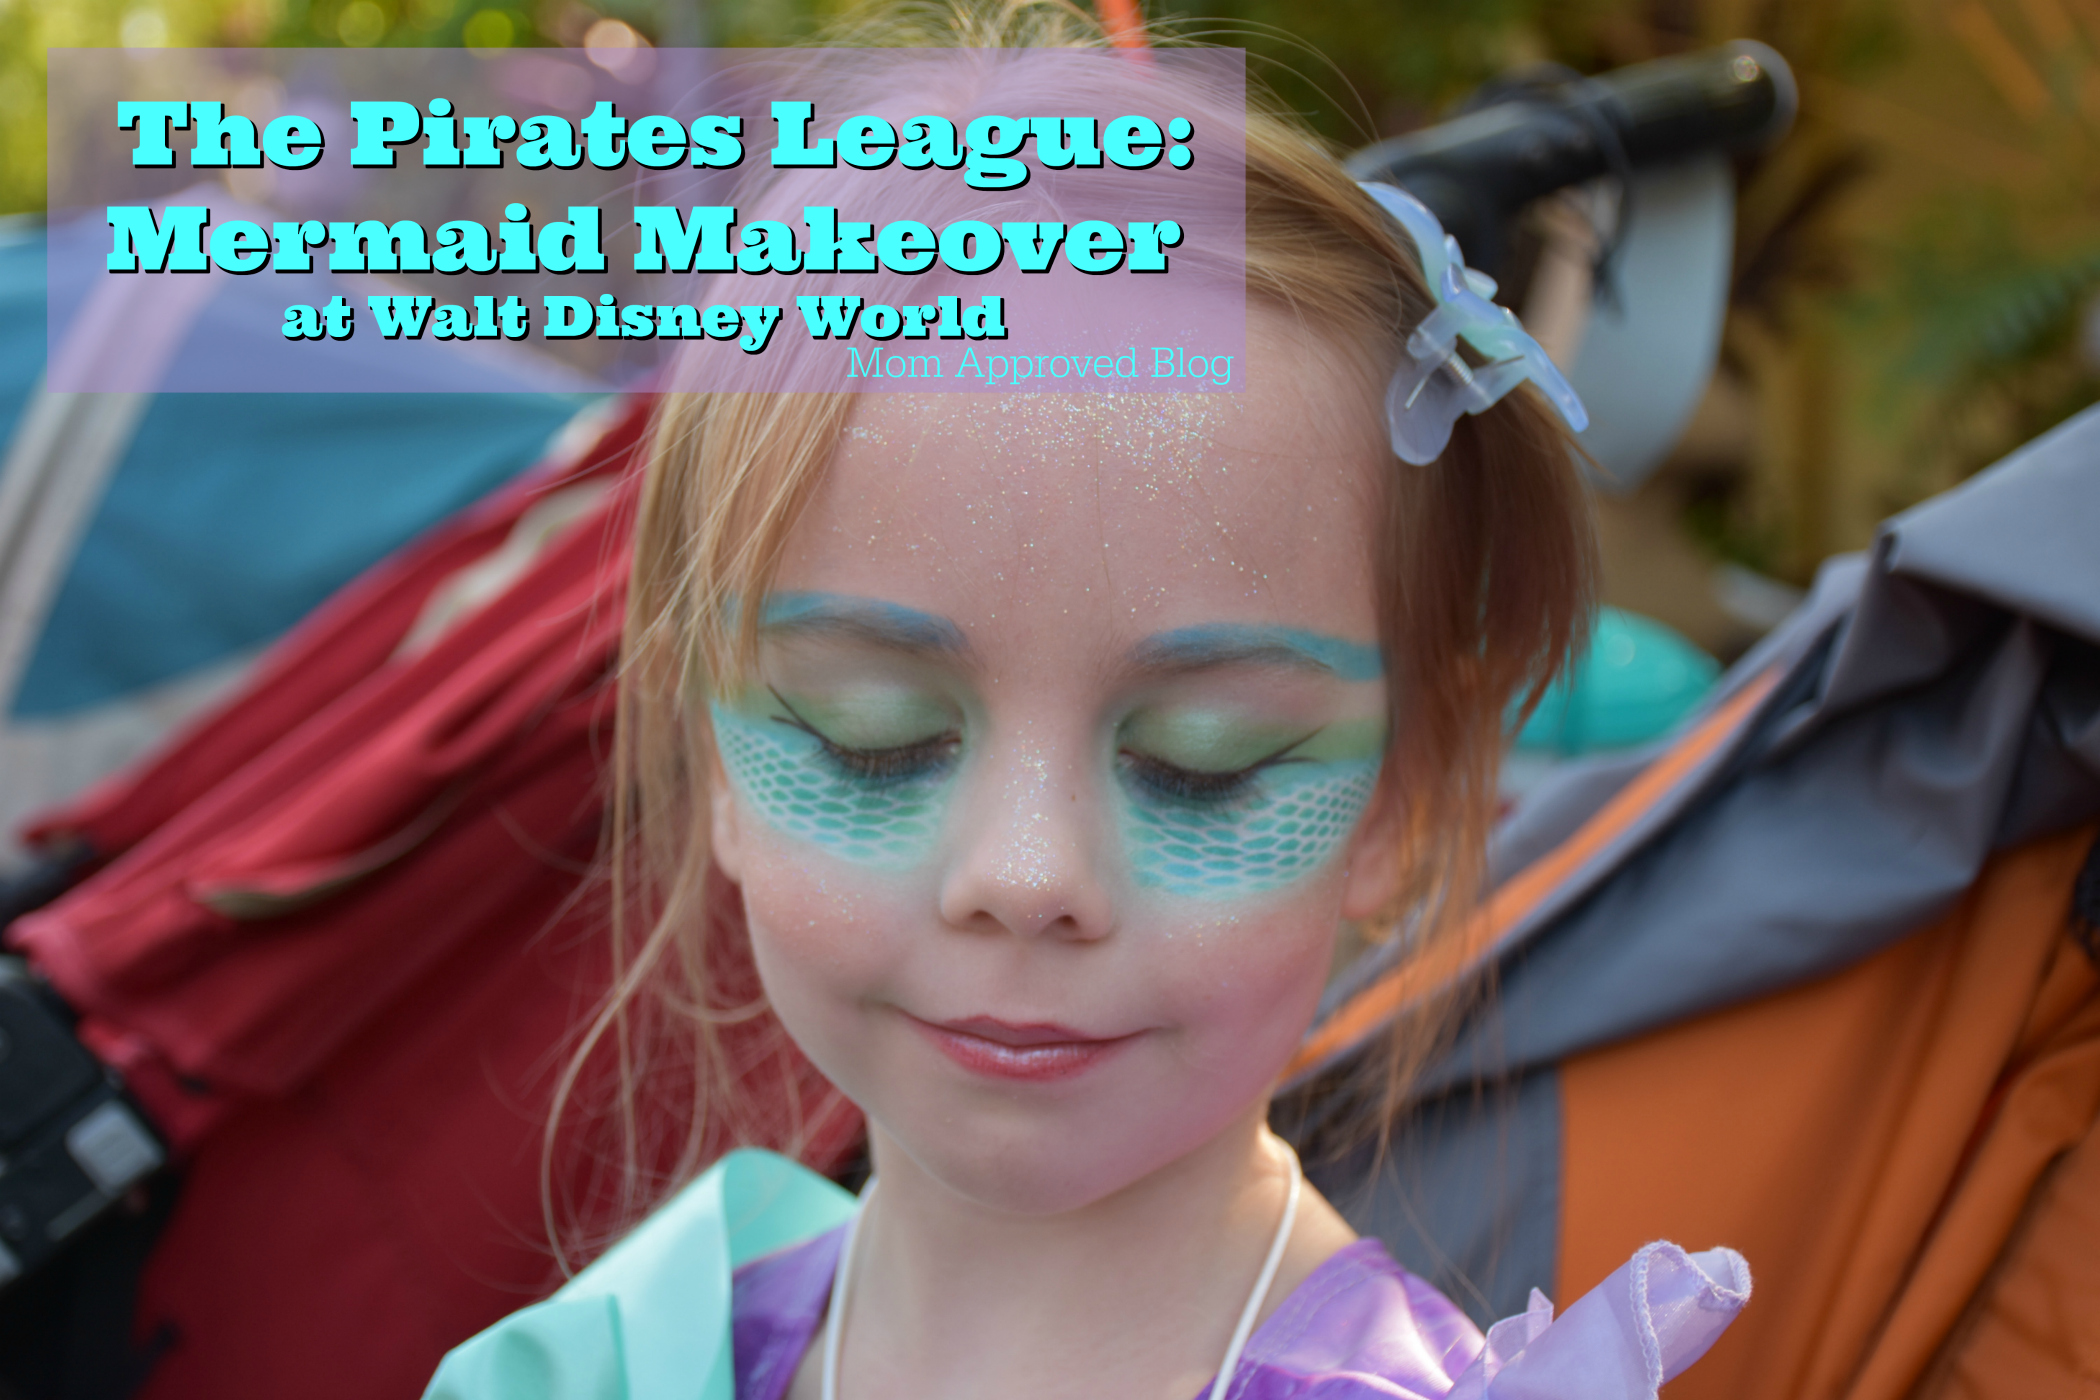 Make Over The Pirates League Mermaid Makeover At Walt Disney World Mom